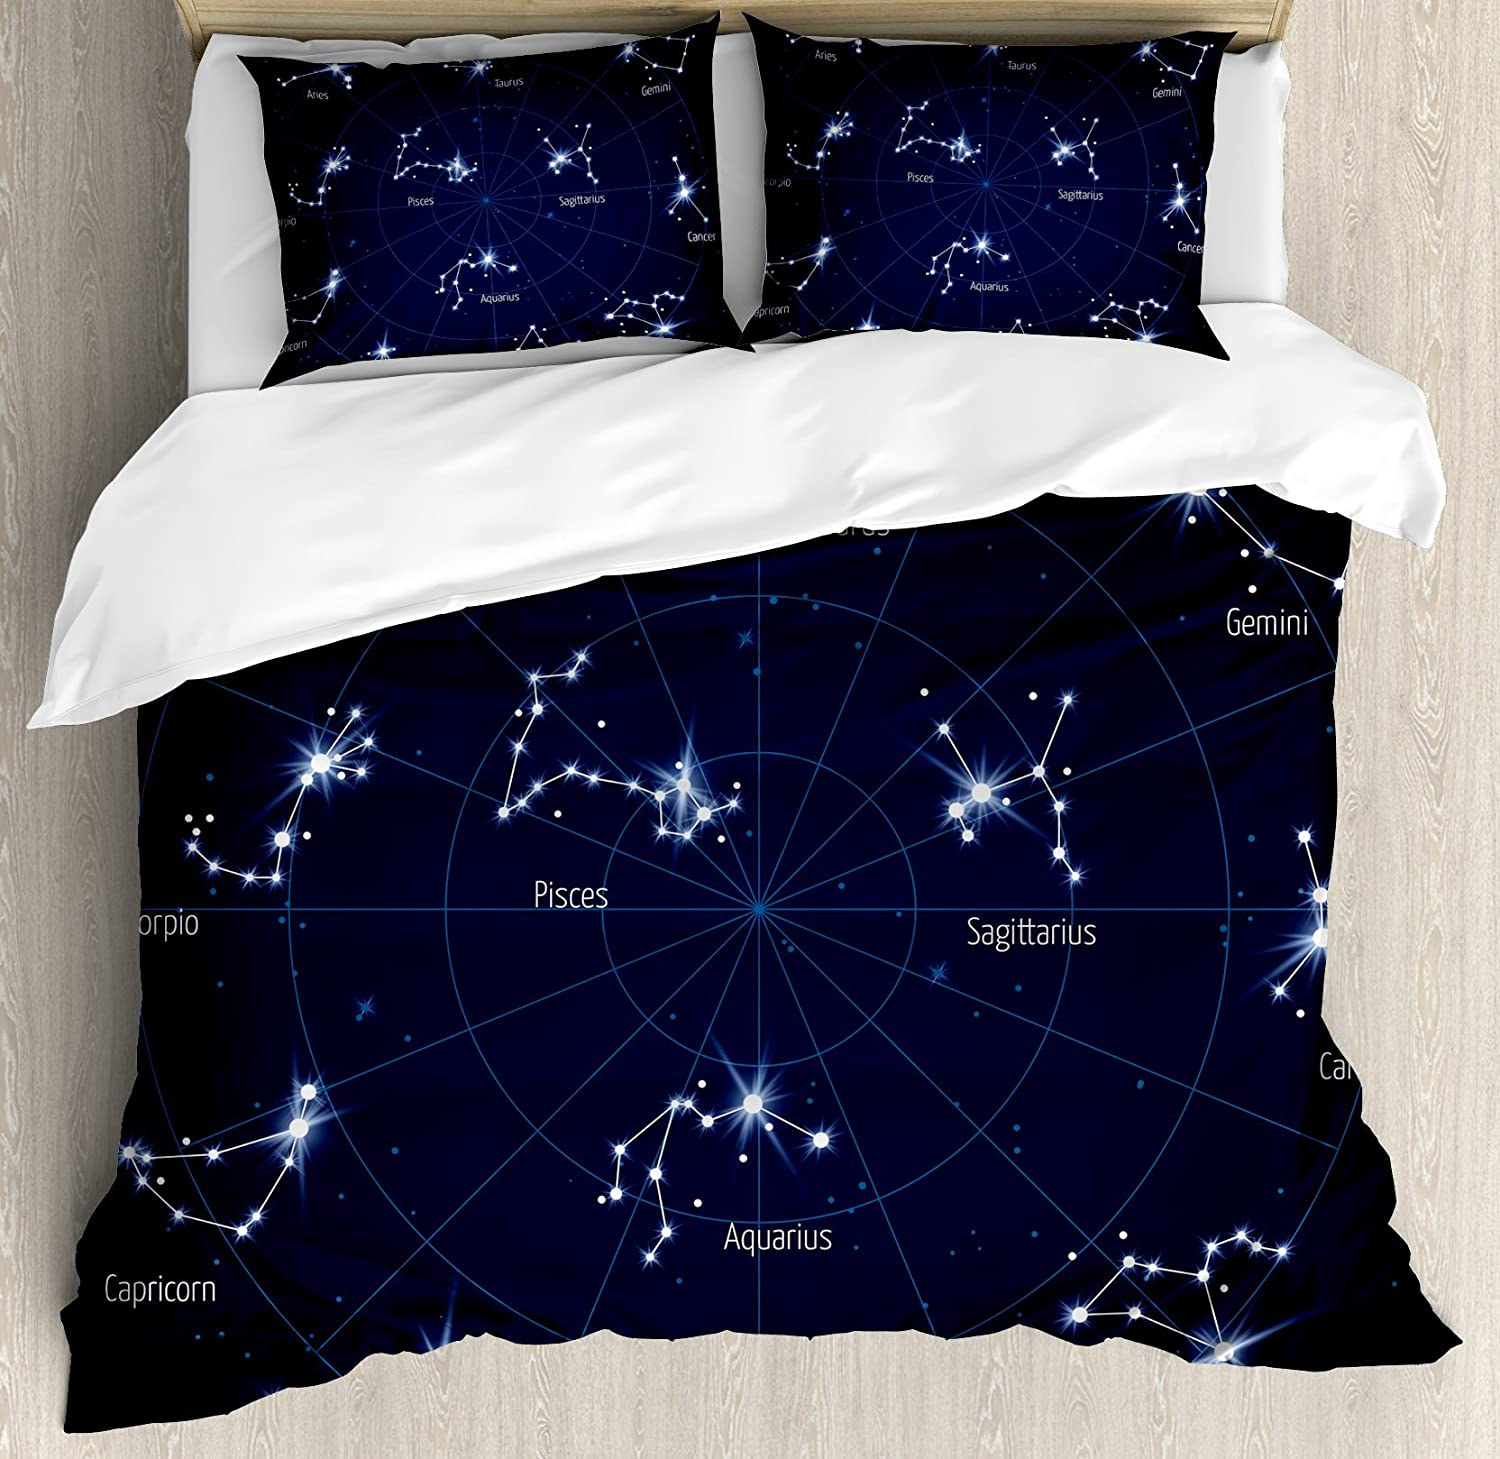 Sky Star Map.Amazon Com Ambesonne Constellation Duvet Cover Set Sky Star Map